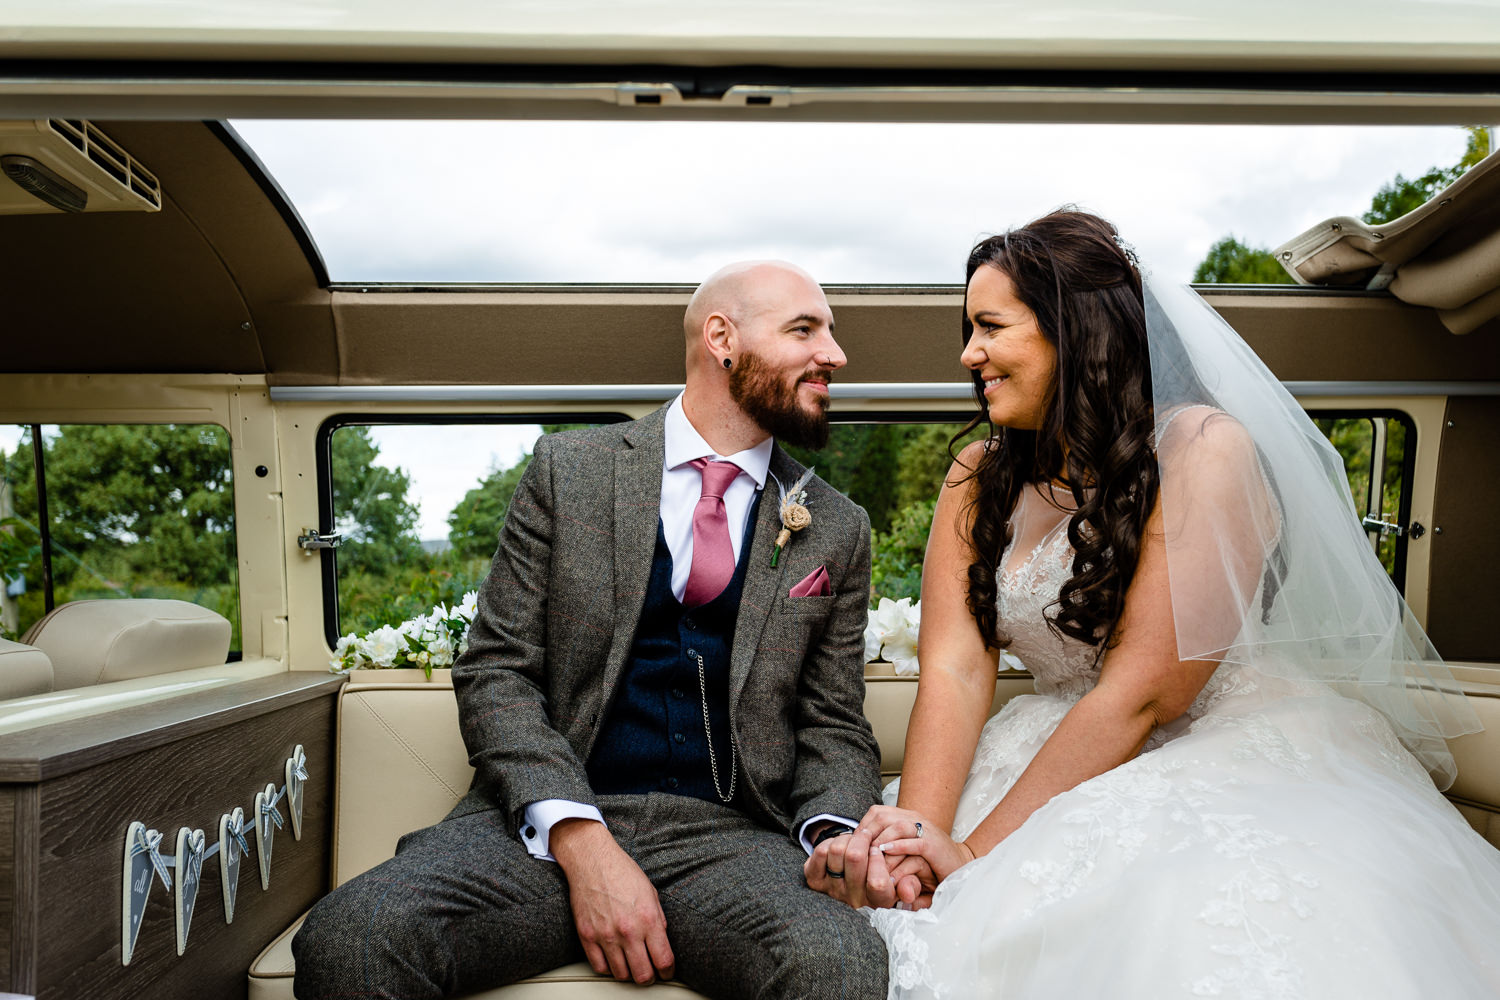 Rochdale wedding photo, bride and groom in a vintage VW campervan